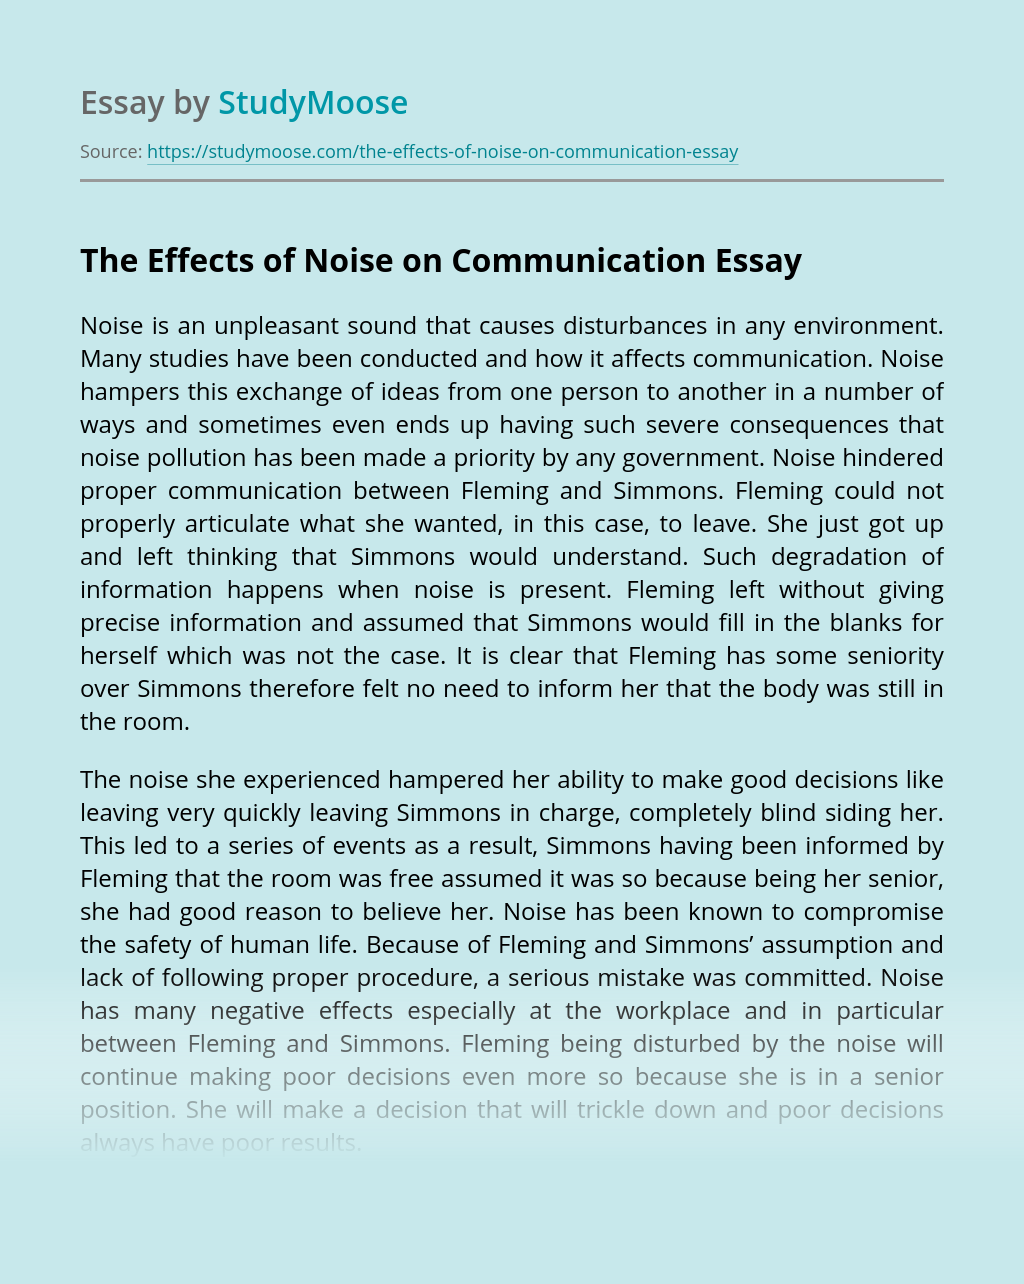 The Effects of Noise on Communication